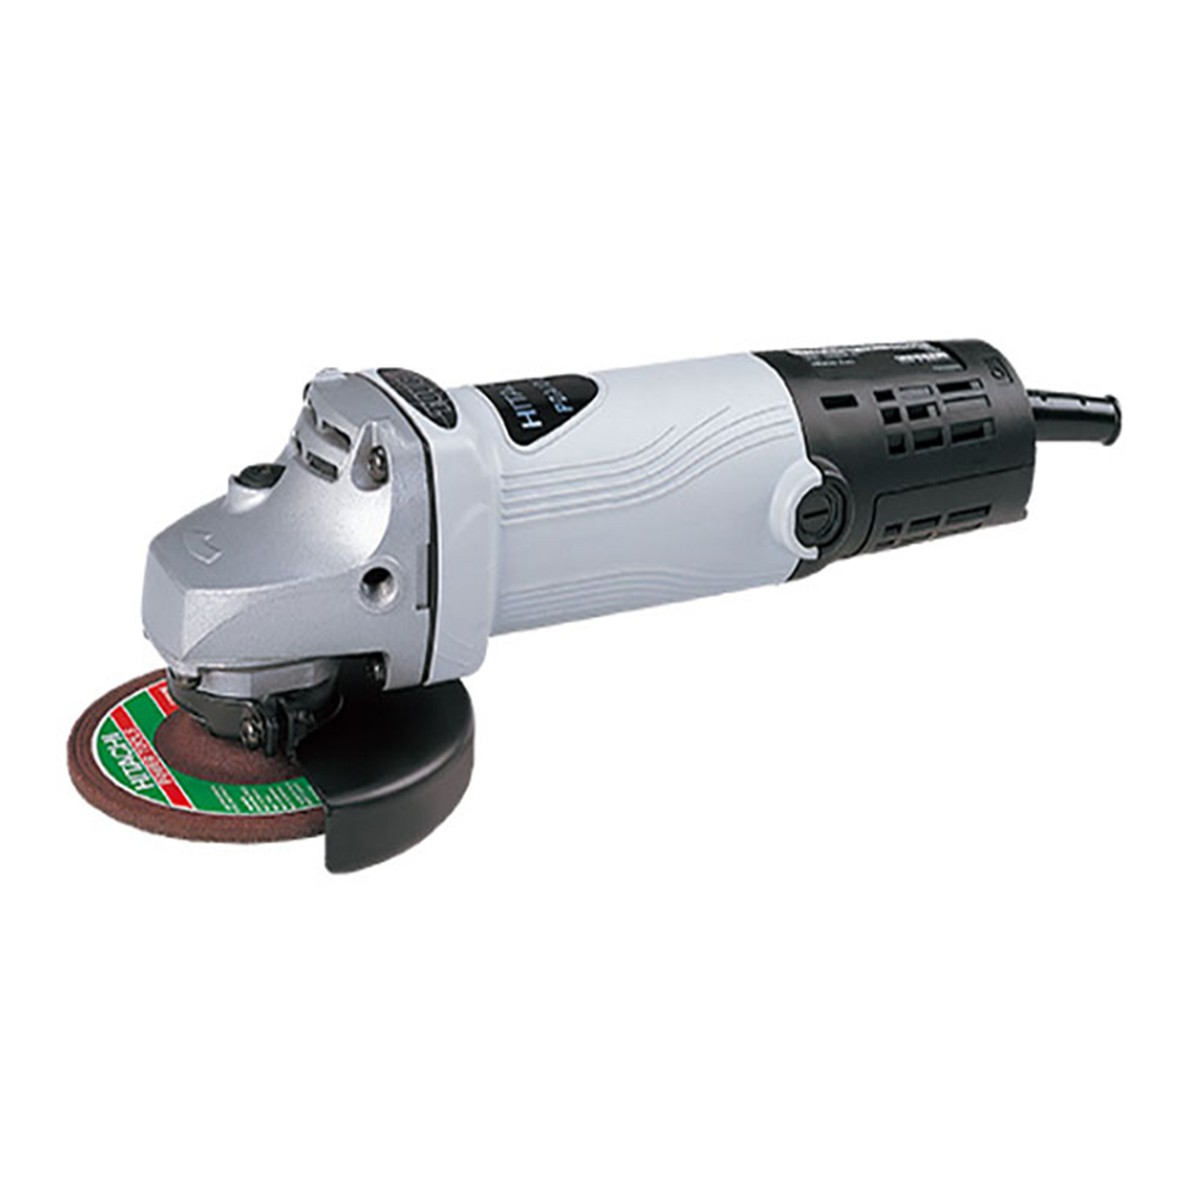 Hitachi 715W Electric Angle Grinder with Grinding Abrasive Wheels  PDA100M